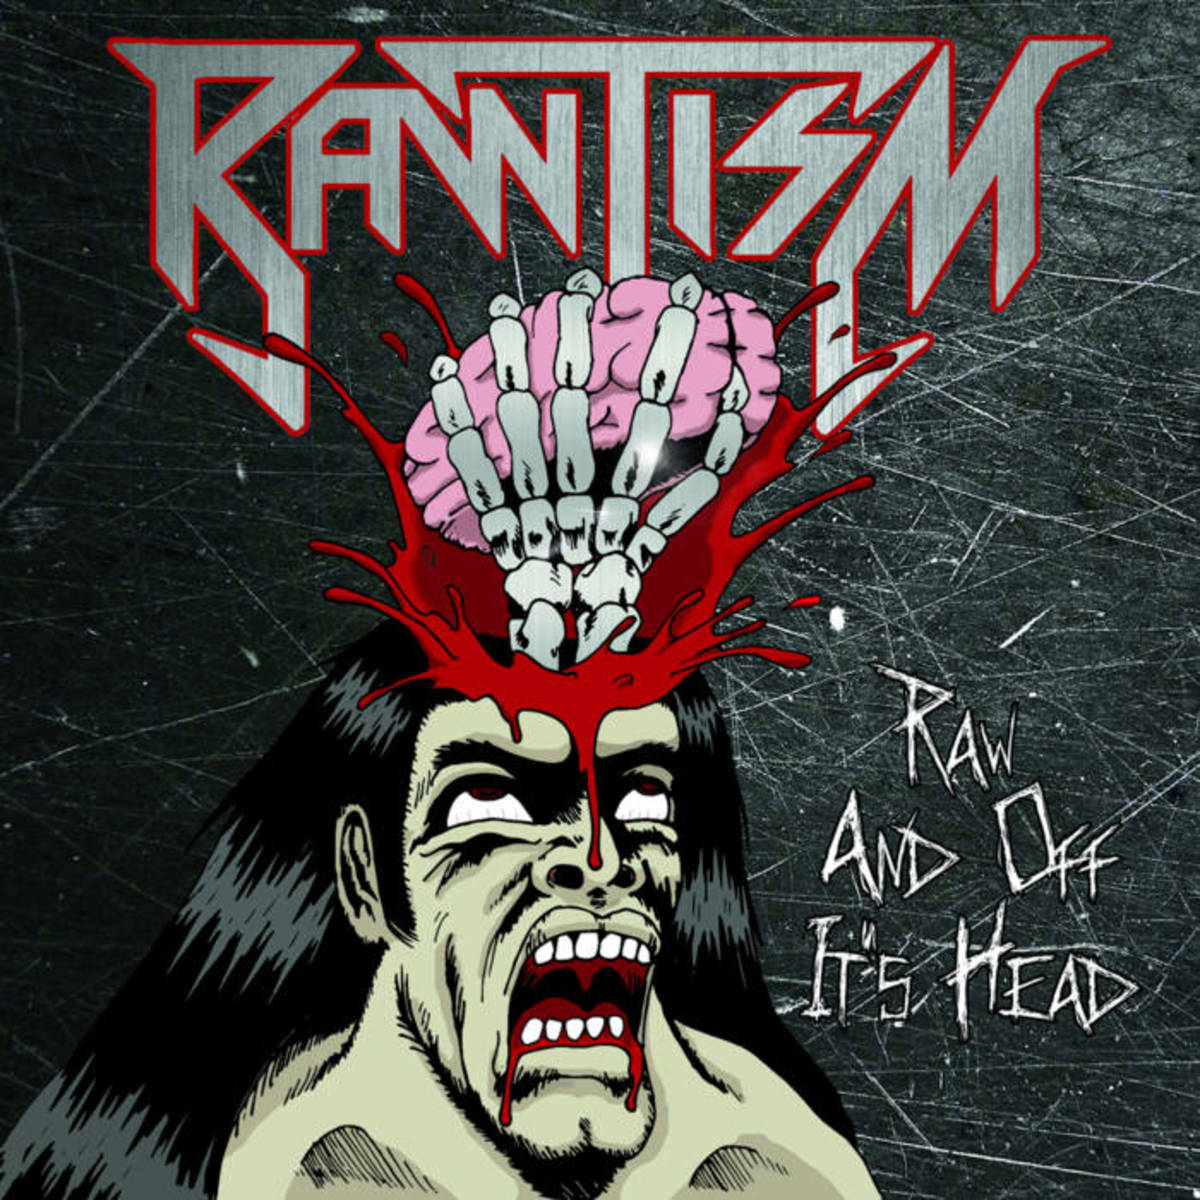 review-of-the-album-raw-and-off-its-head-by-rawtism